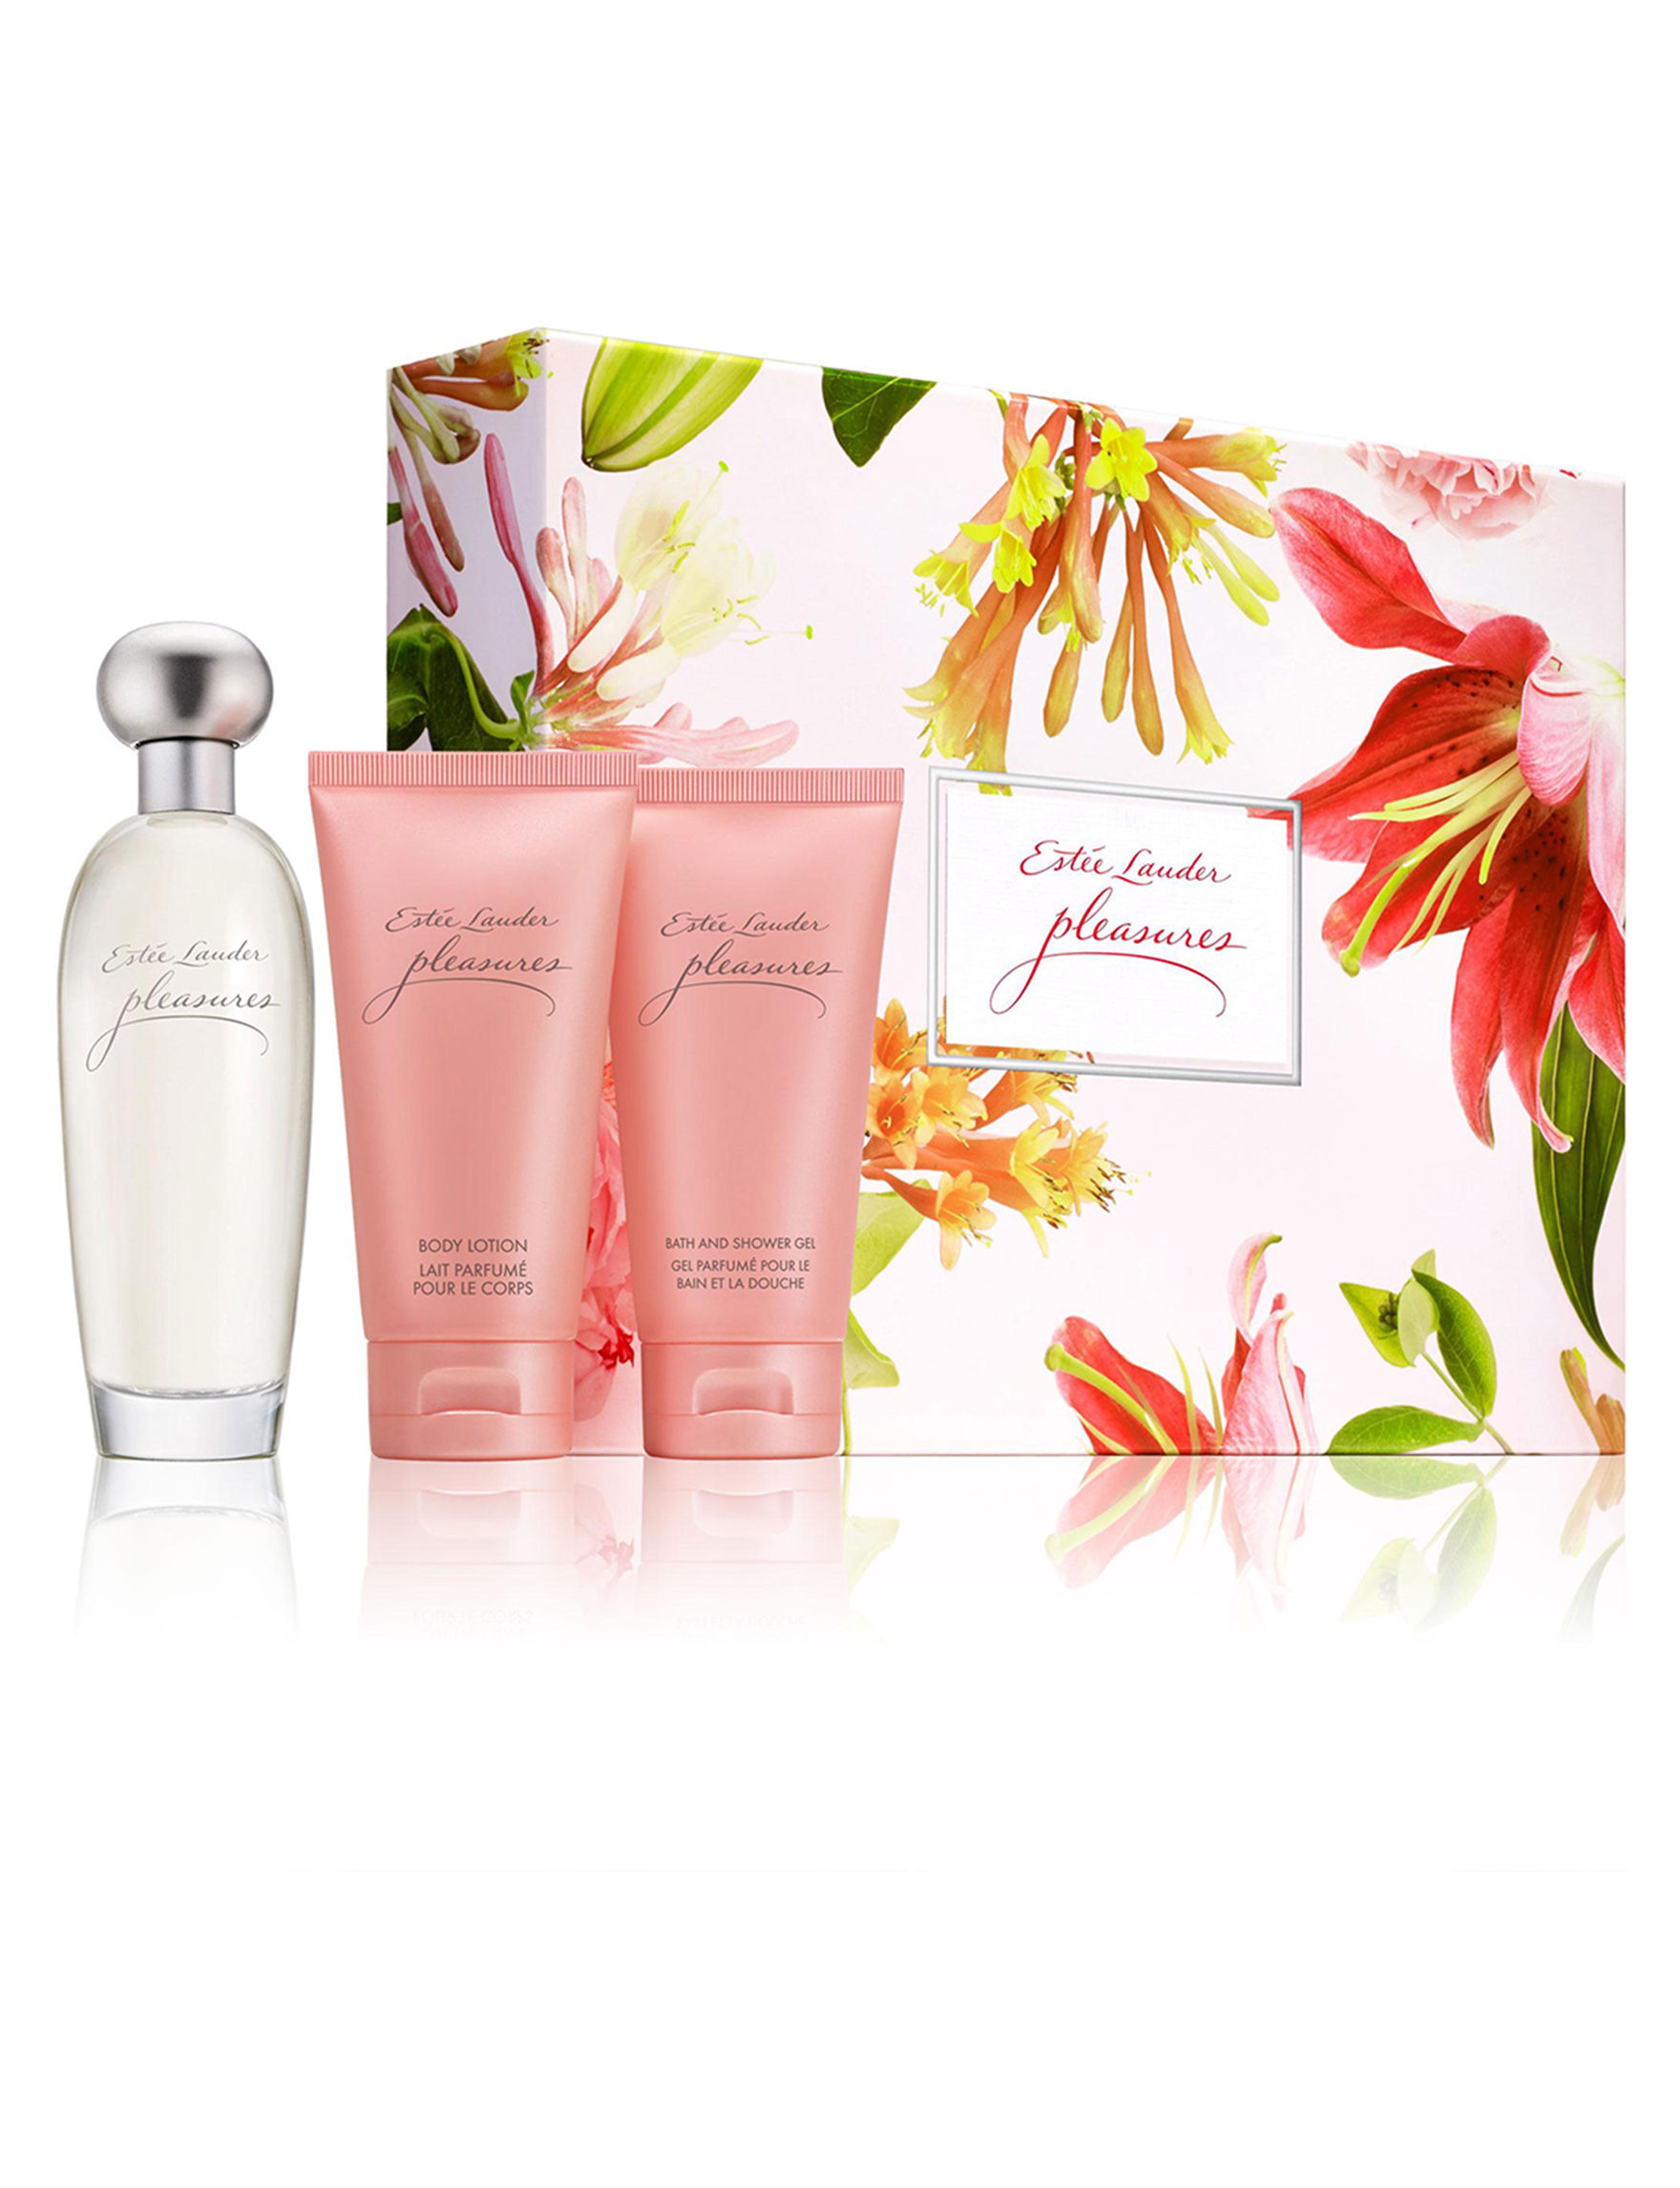 Estee Lauder  Fragrance Gift Sets